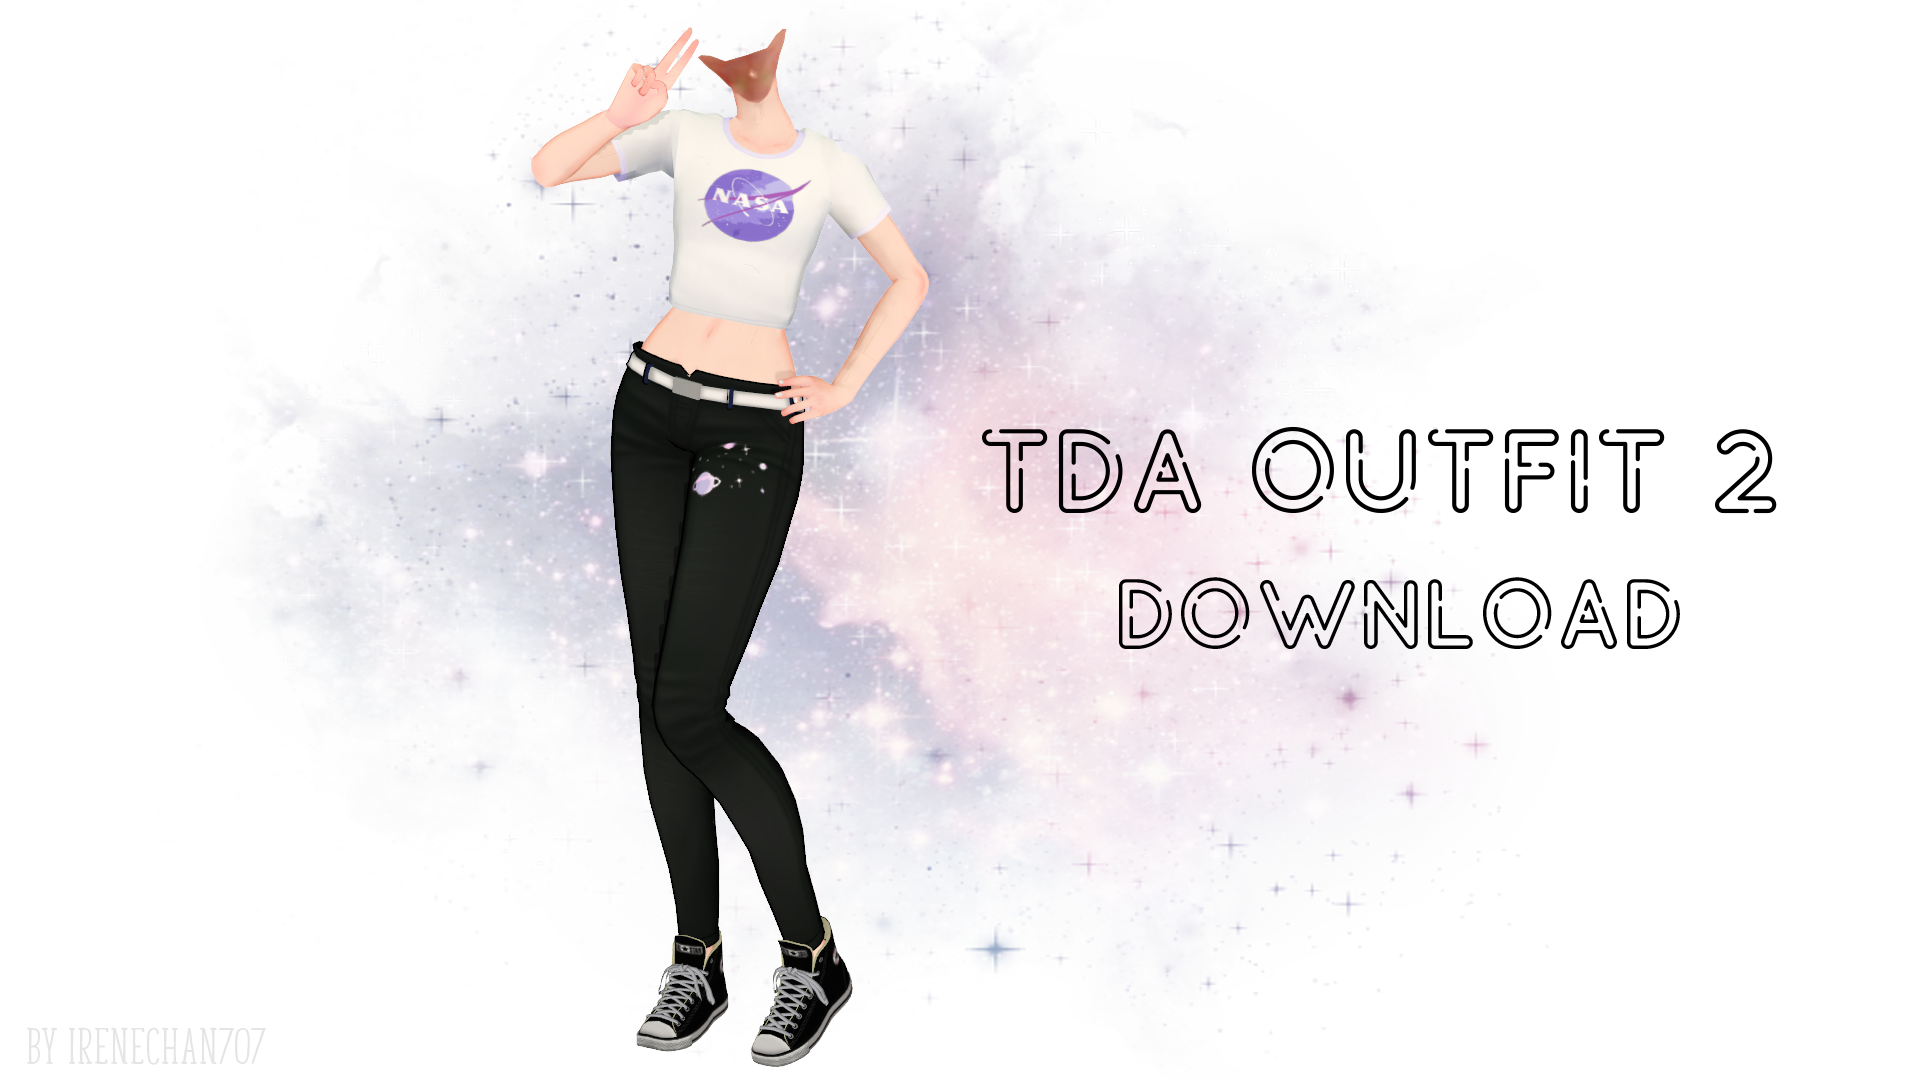 [ MMD ] TDA Outfit 2 [ Dl ] By IreneChan707 On DeviantArt